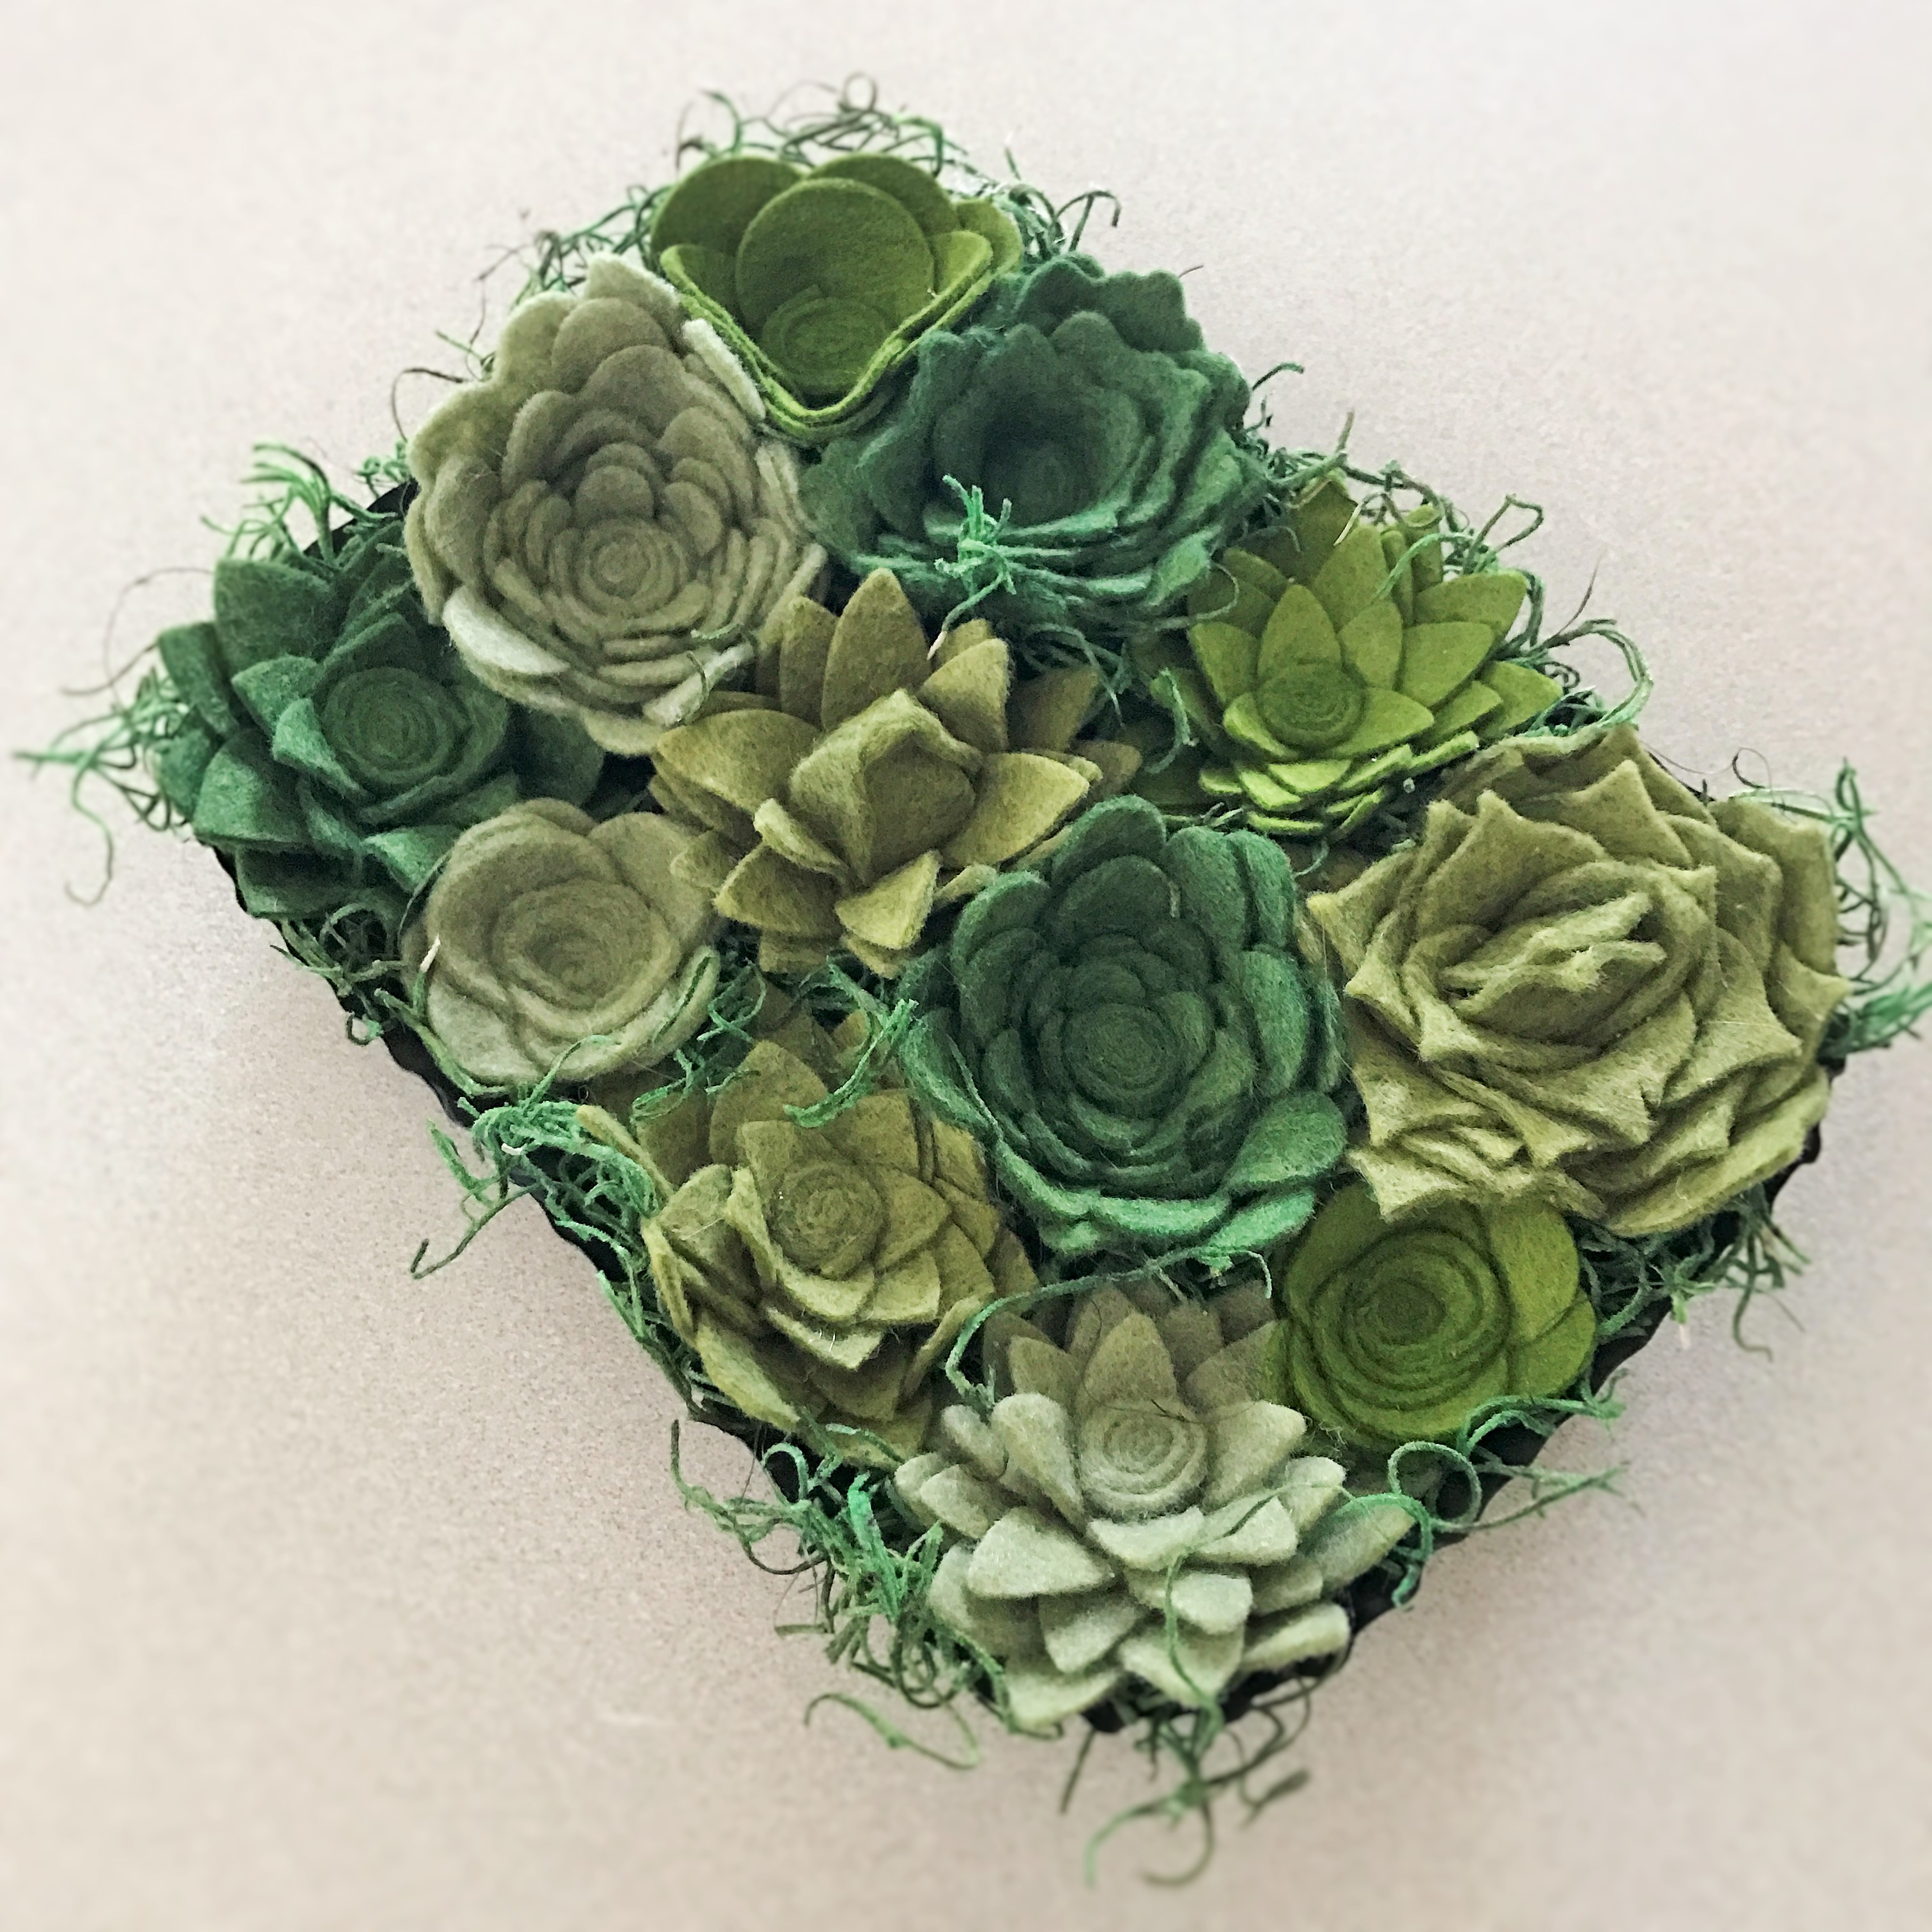 Felt Succulent Wall Box Sold By Humble Design Co On Storenvy